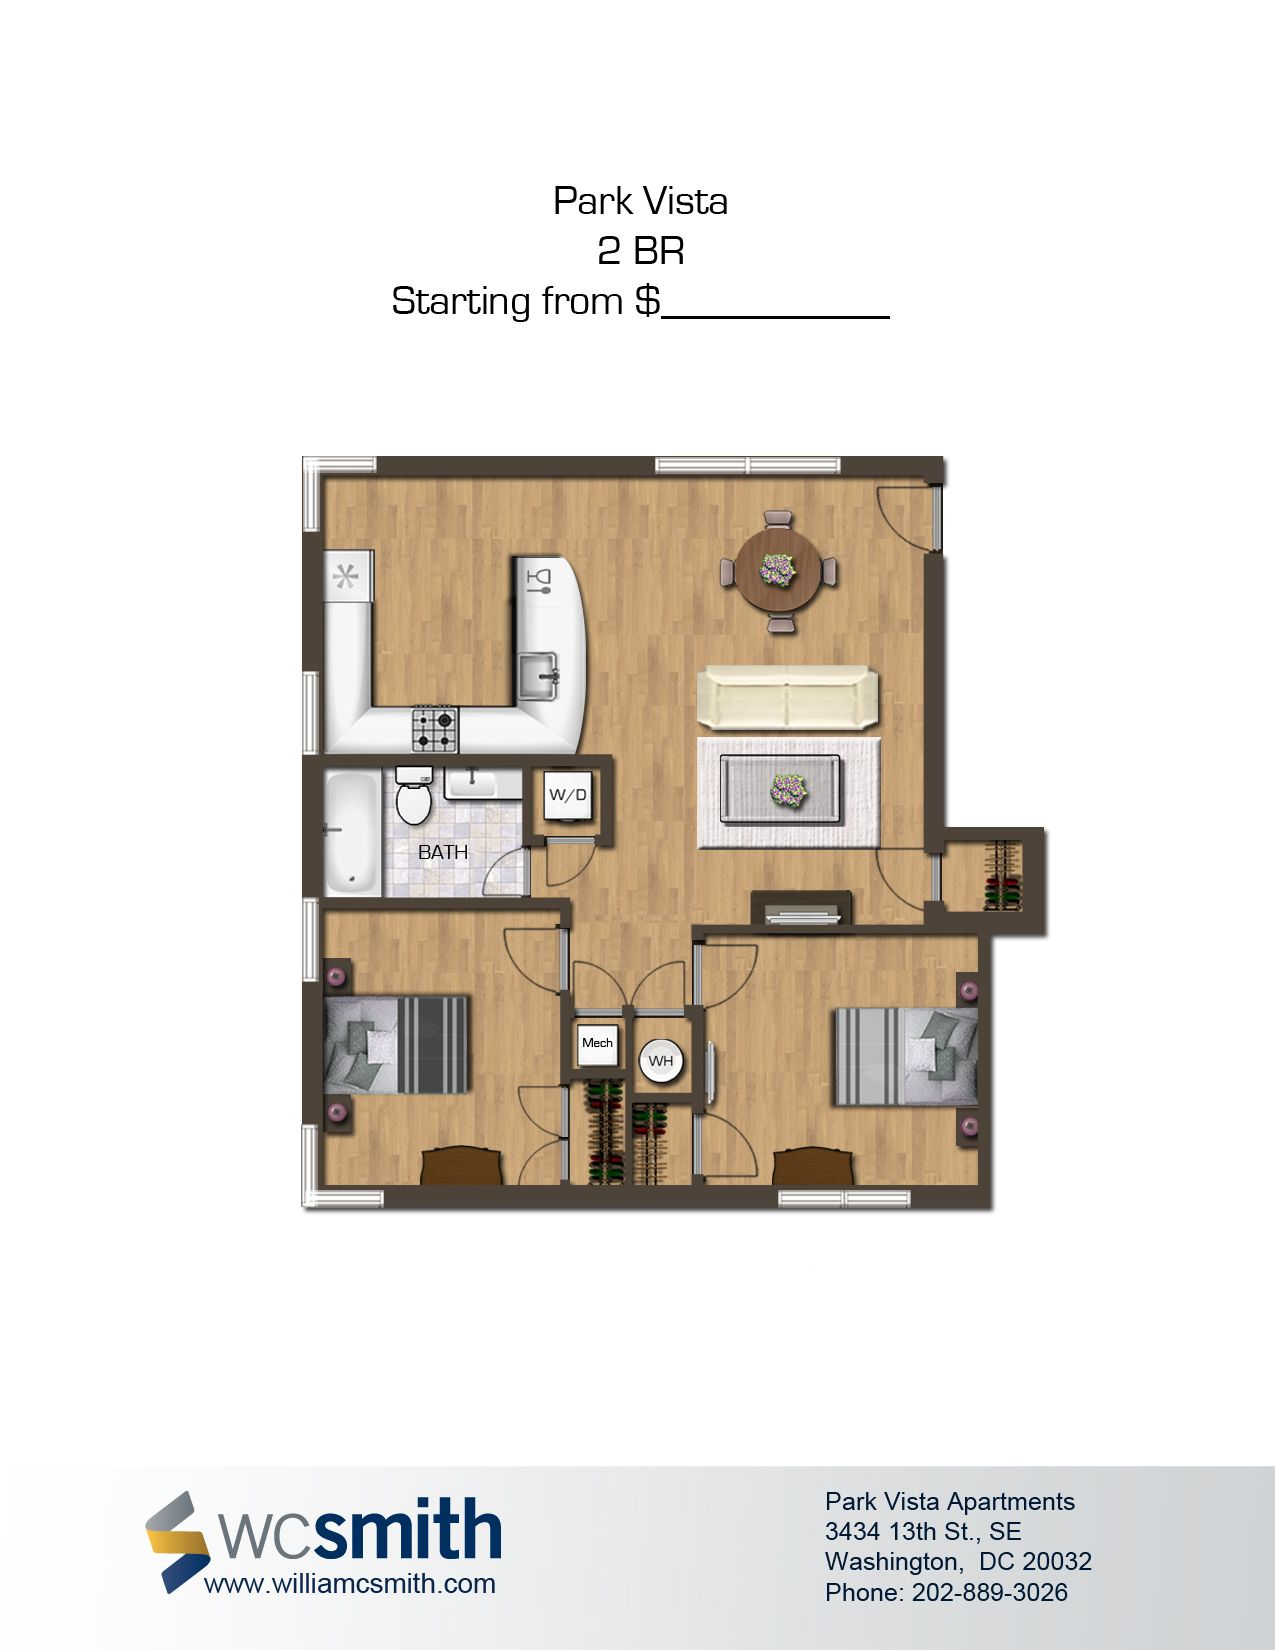 Two bedroom floor plan park vista in southeast washington dc wc smith dcapartments for 2 bedroom apartments washington dc